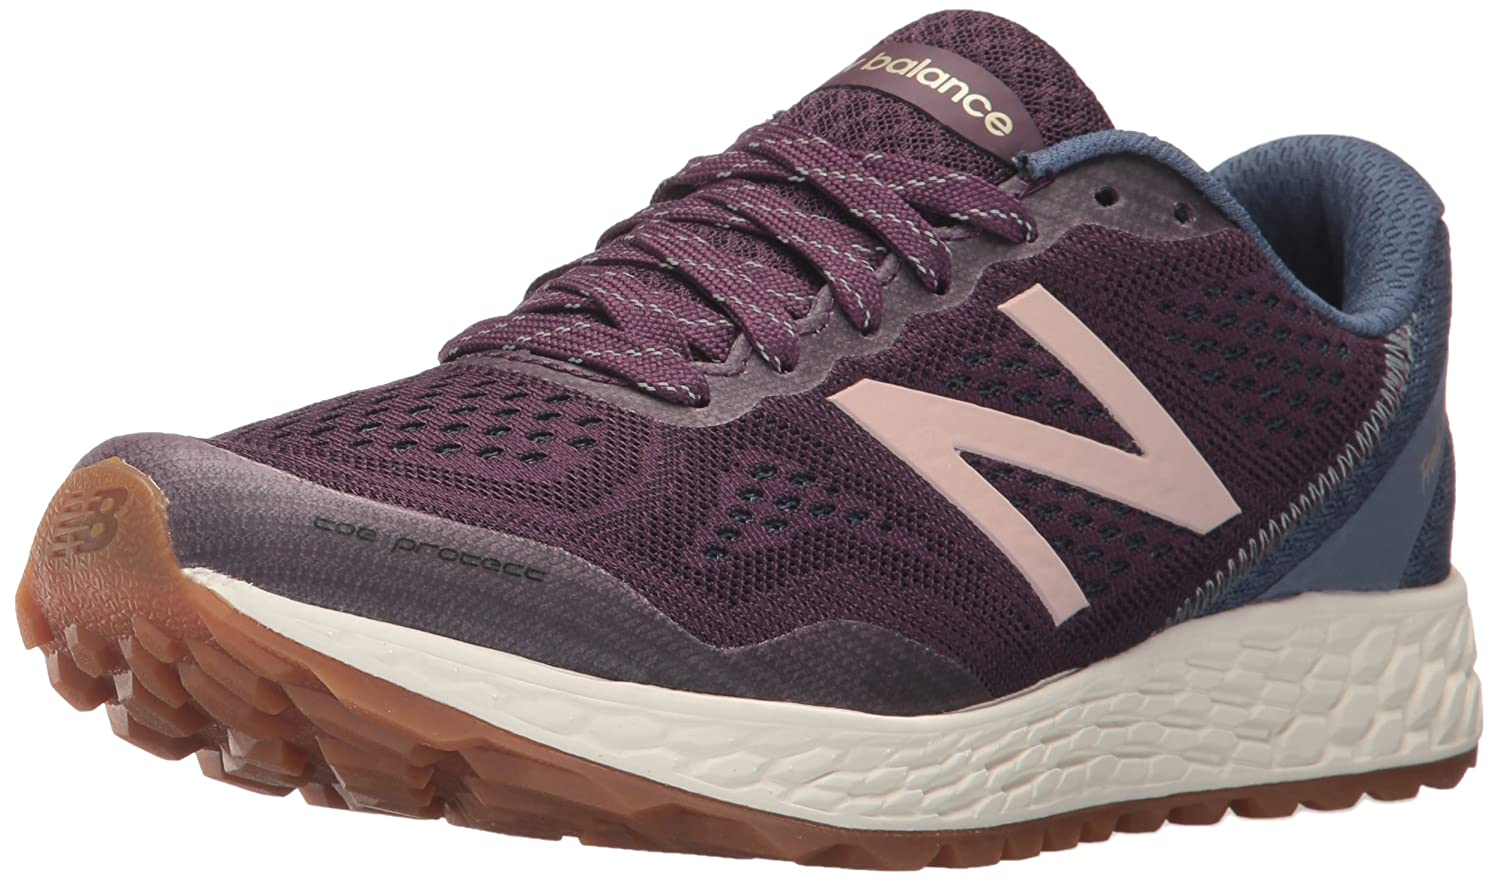 New Balance Fresh Foam Gobi V2 Women's Trail Laufschuhe - AW17 - 41